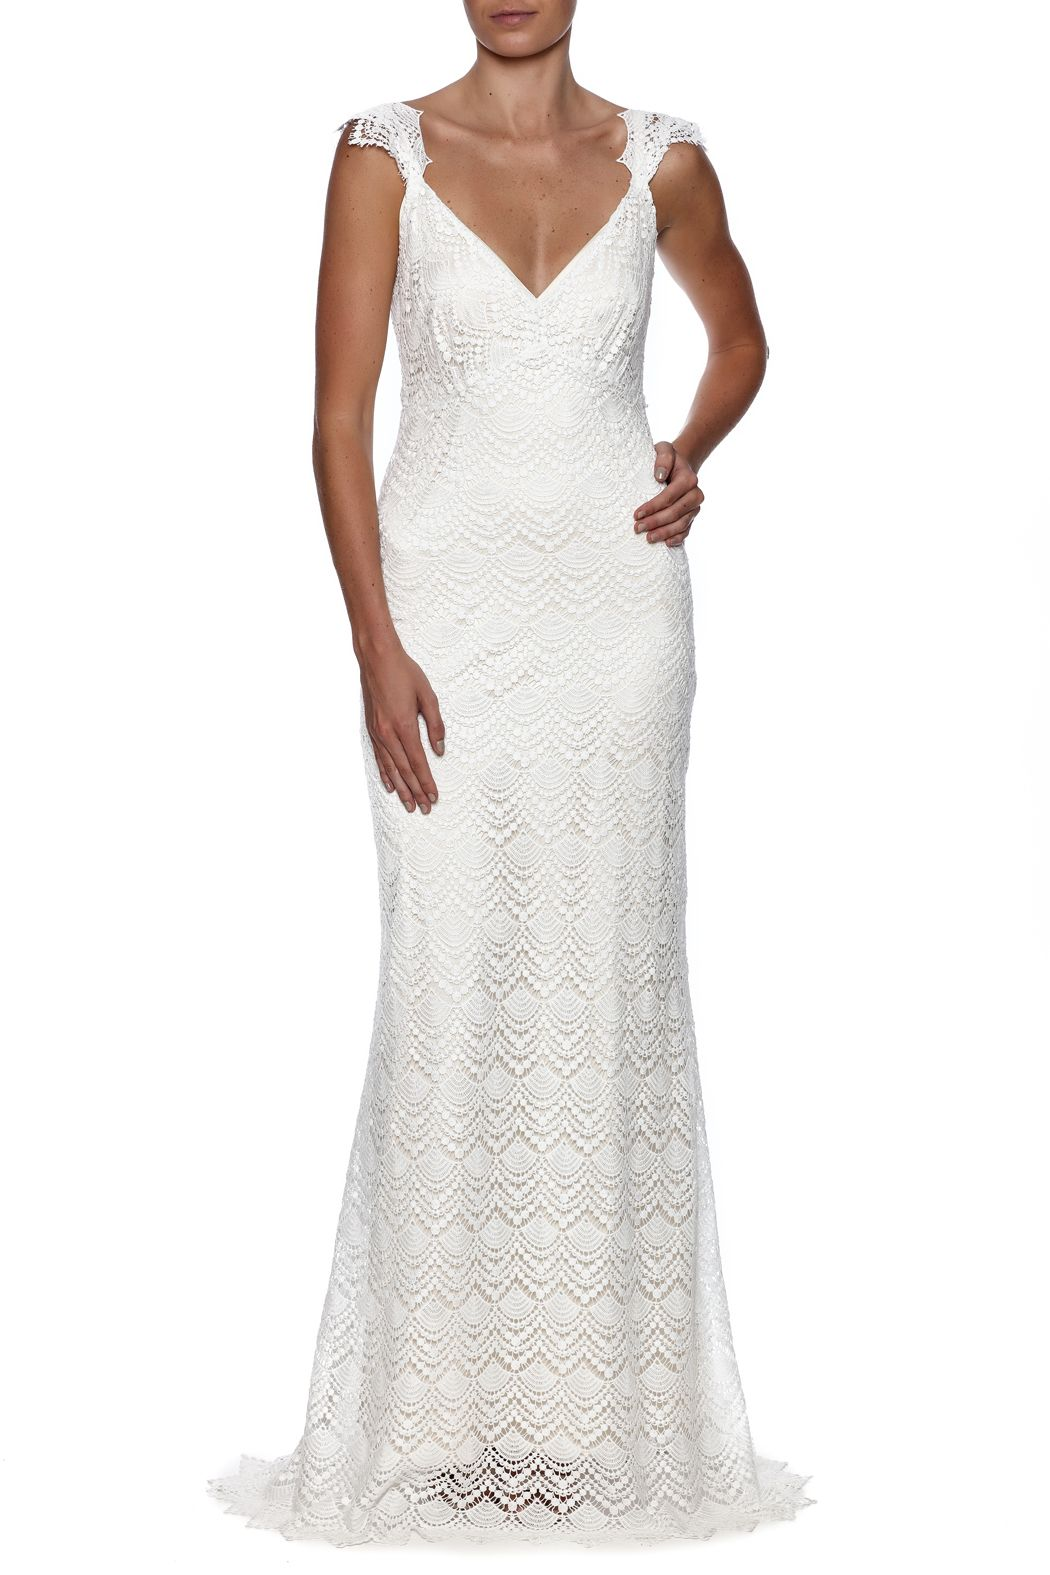 Cicada liberty gown pinterest cotton crochet ivory silk and